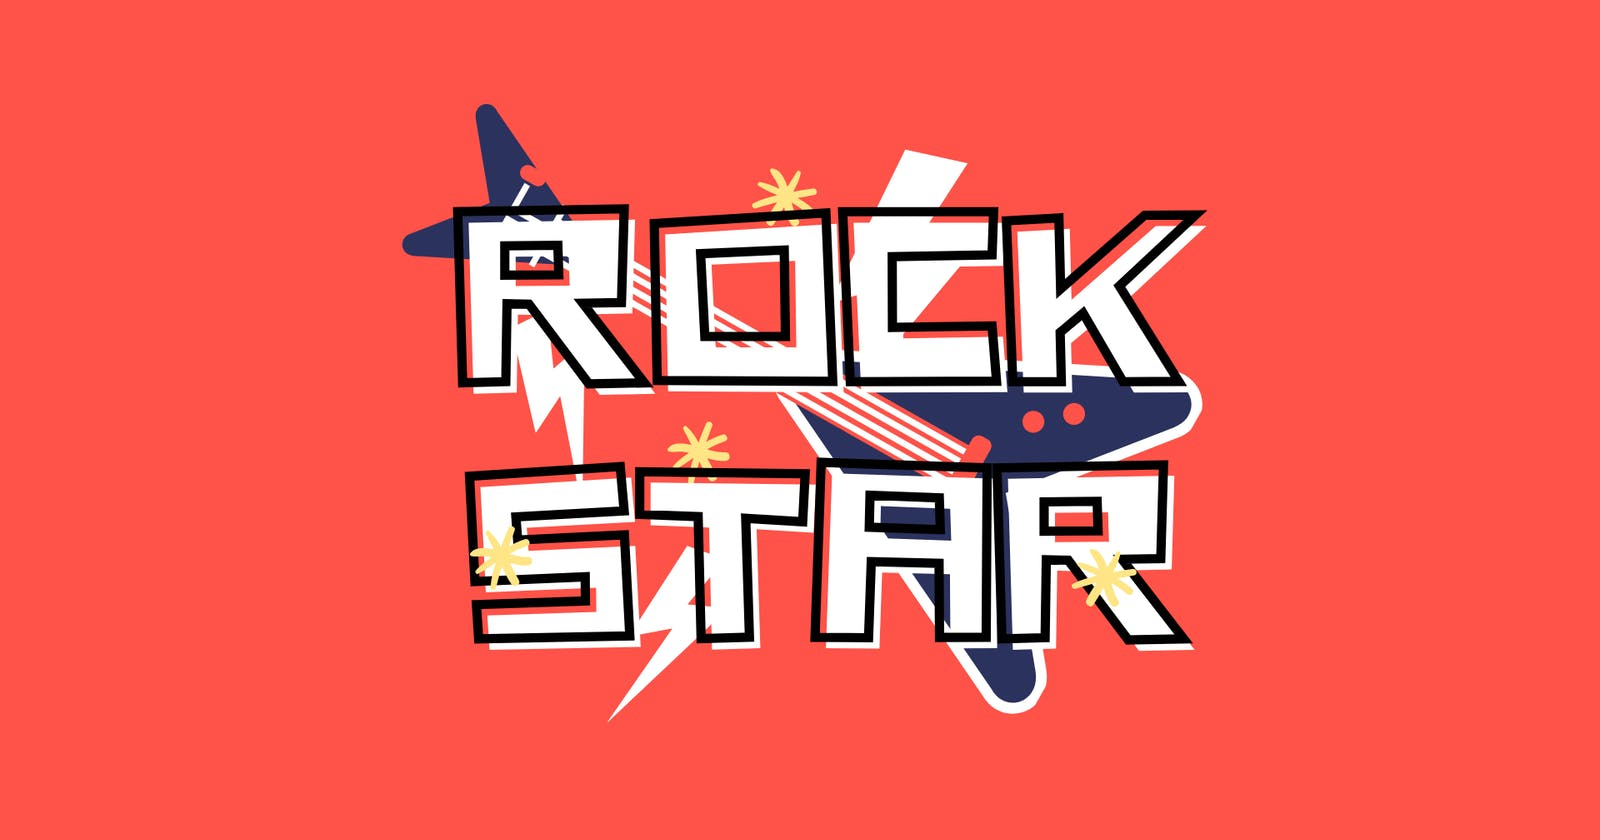 Rockstar Programmers - New Discord Server to connect!